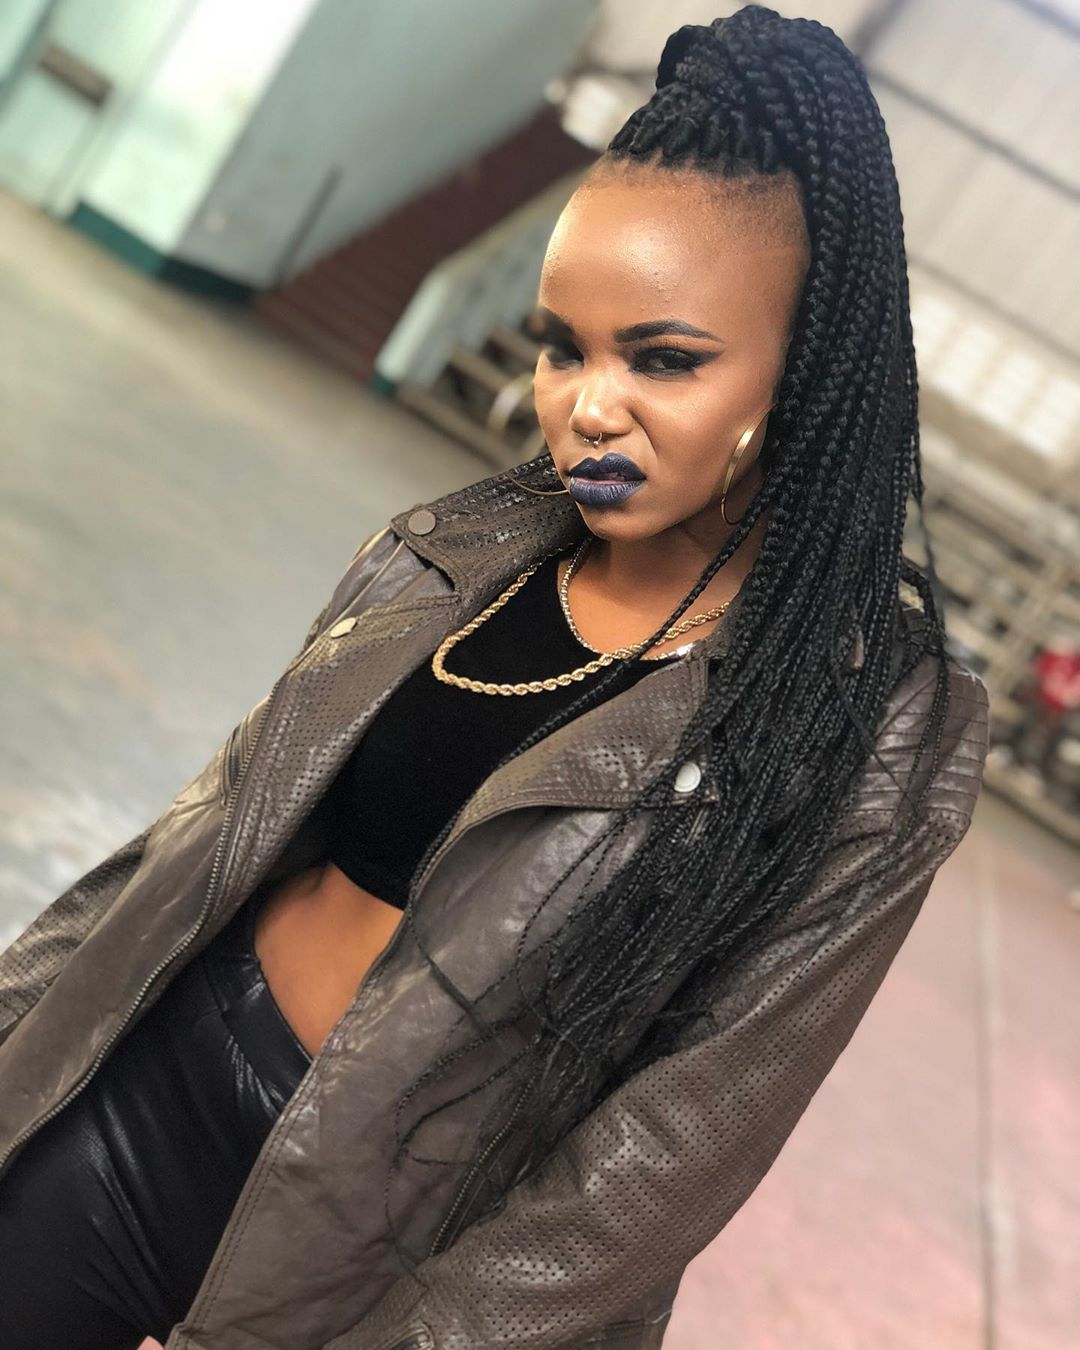 Female Rapper, Rosa Ree Goes Completely Náked In New Photo